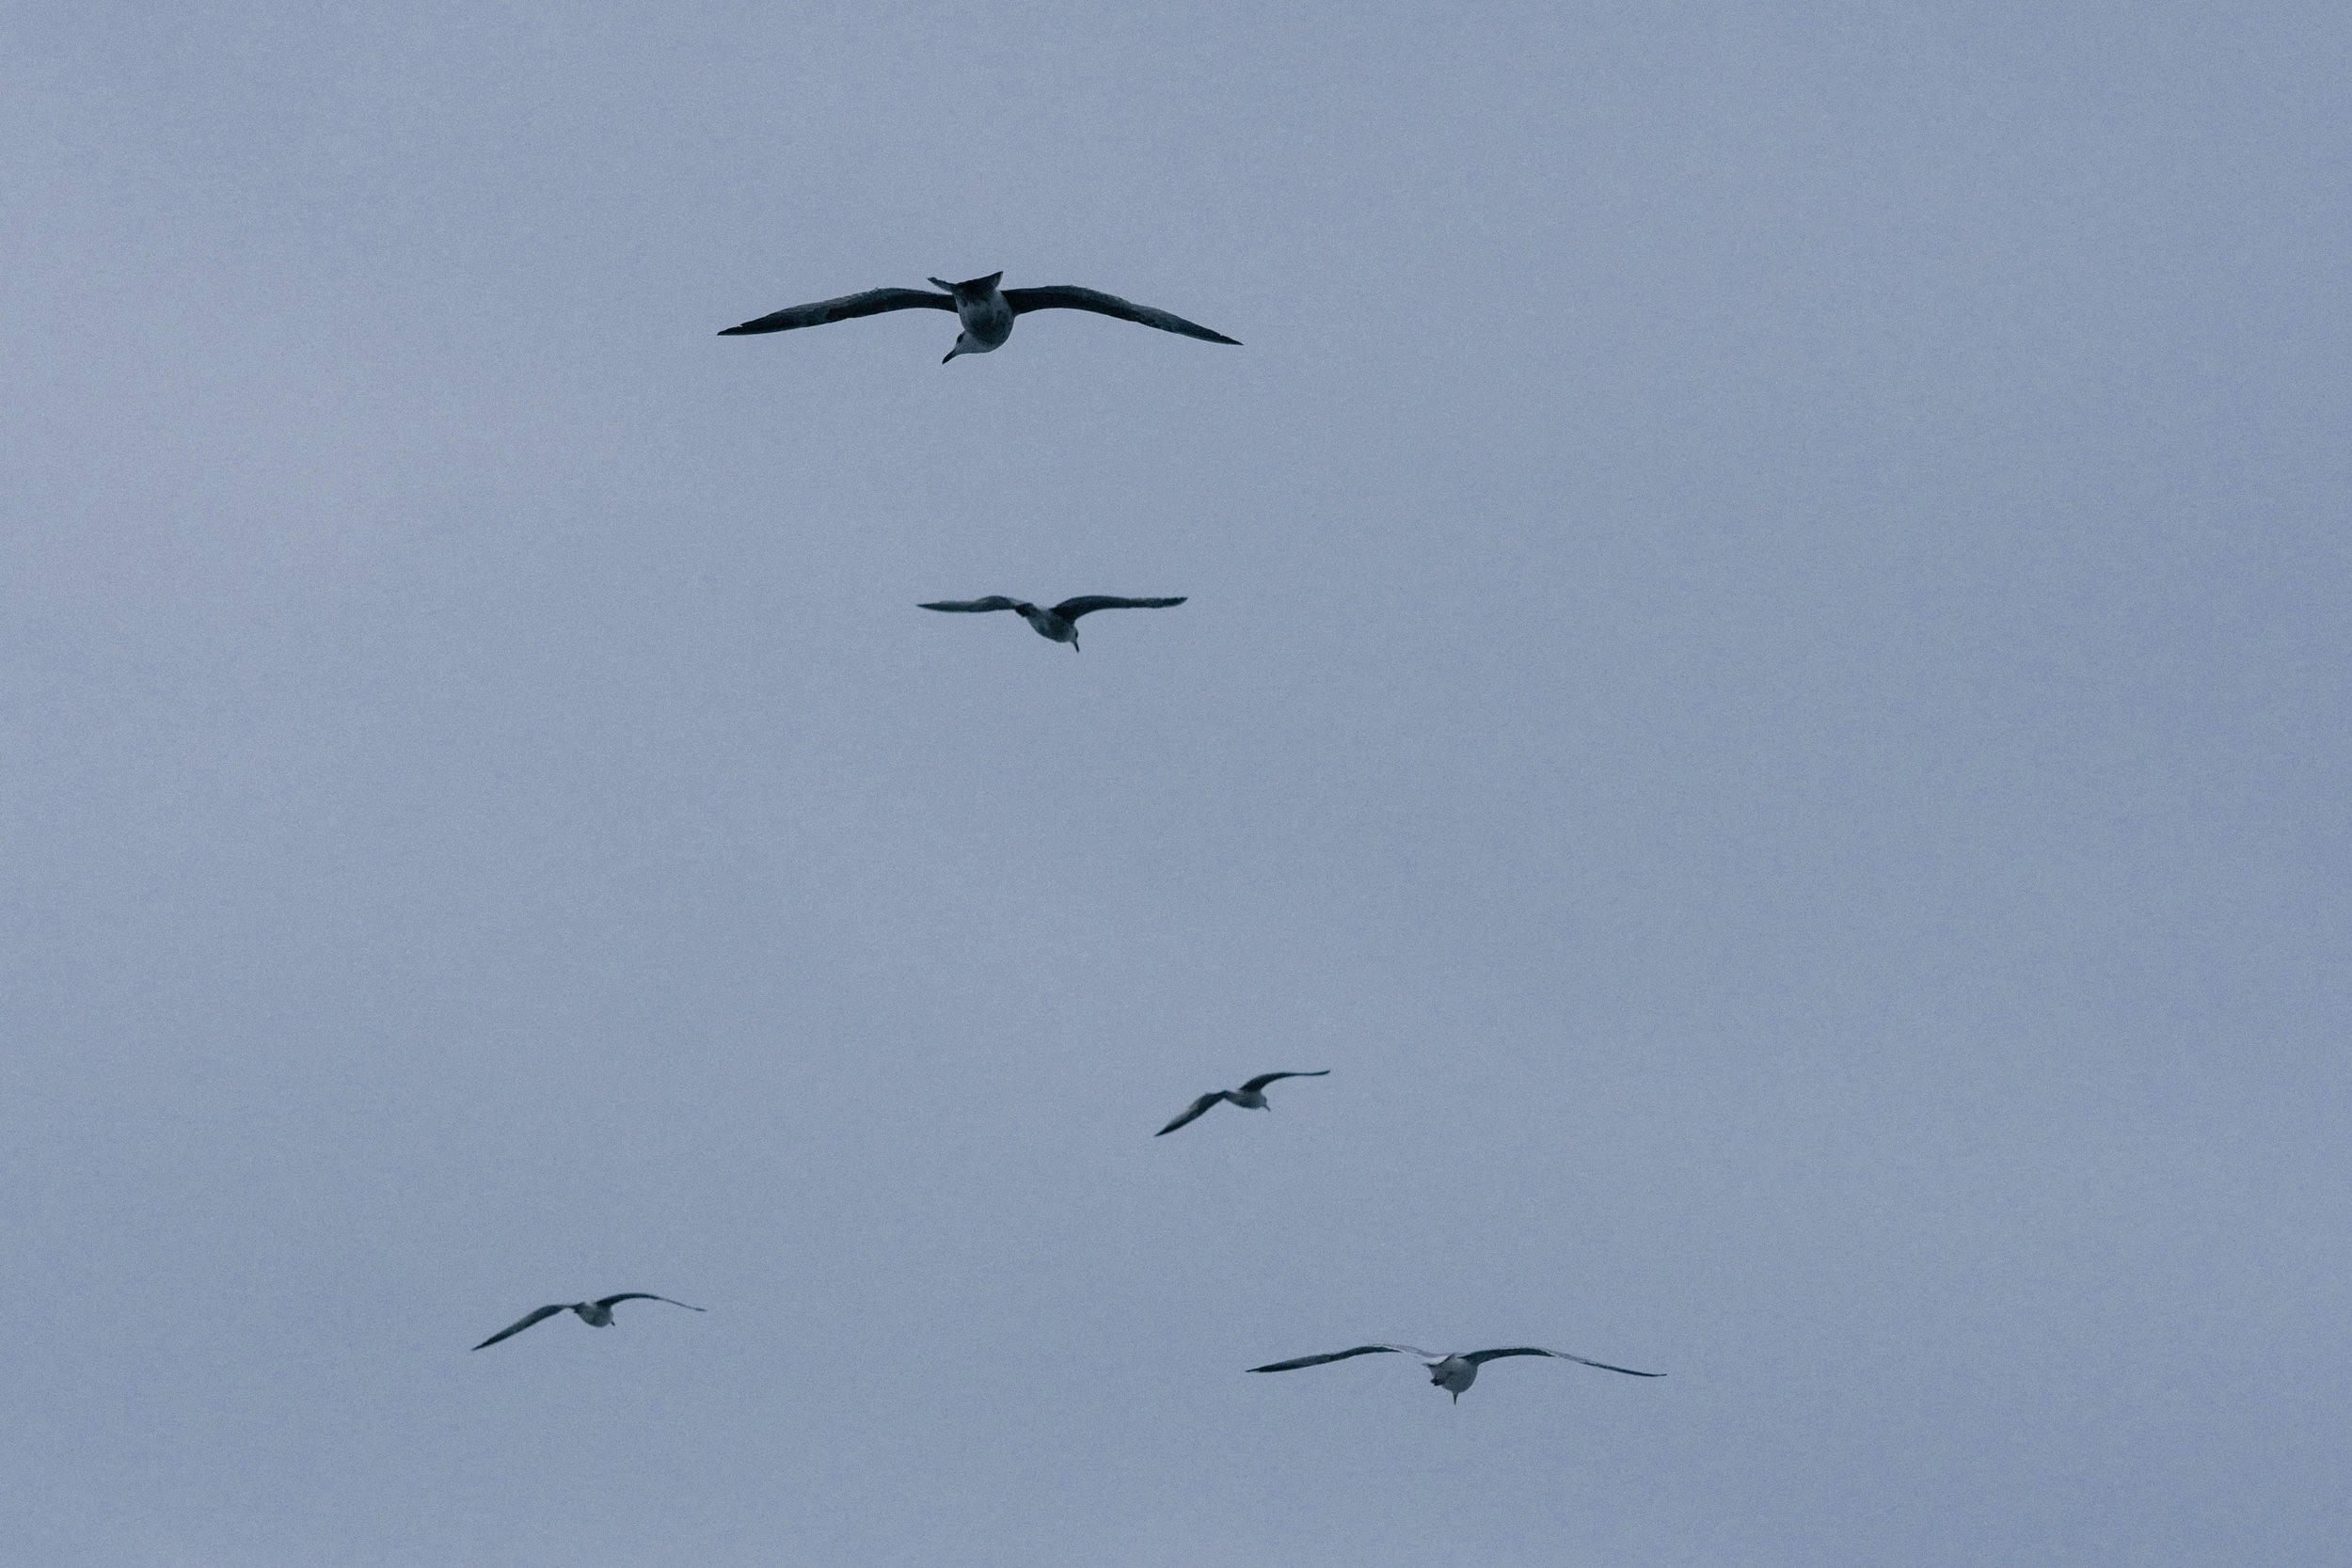 Seagulls in formation